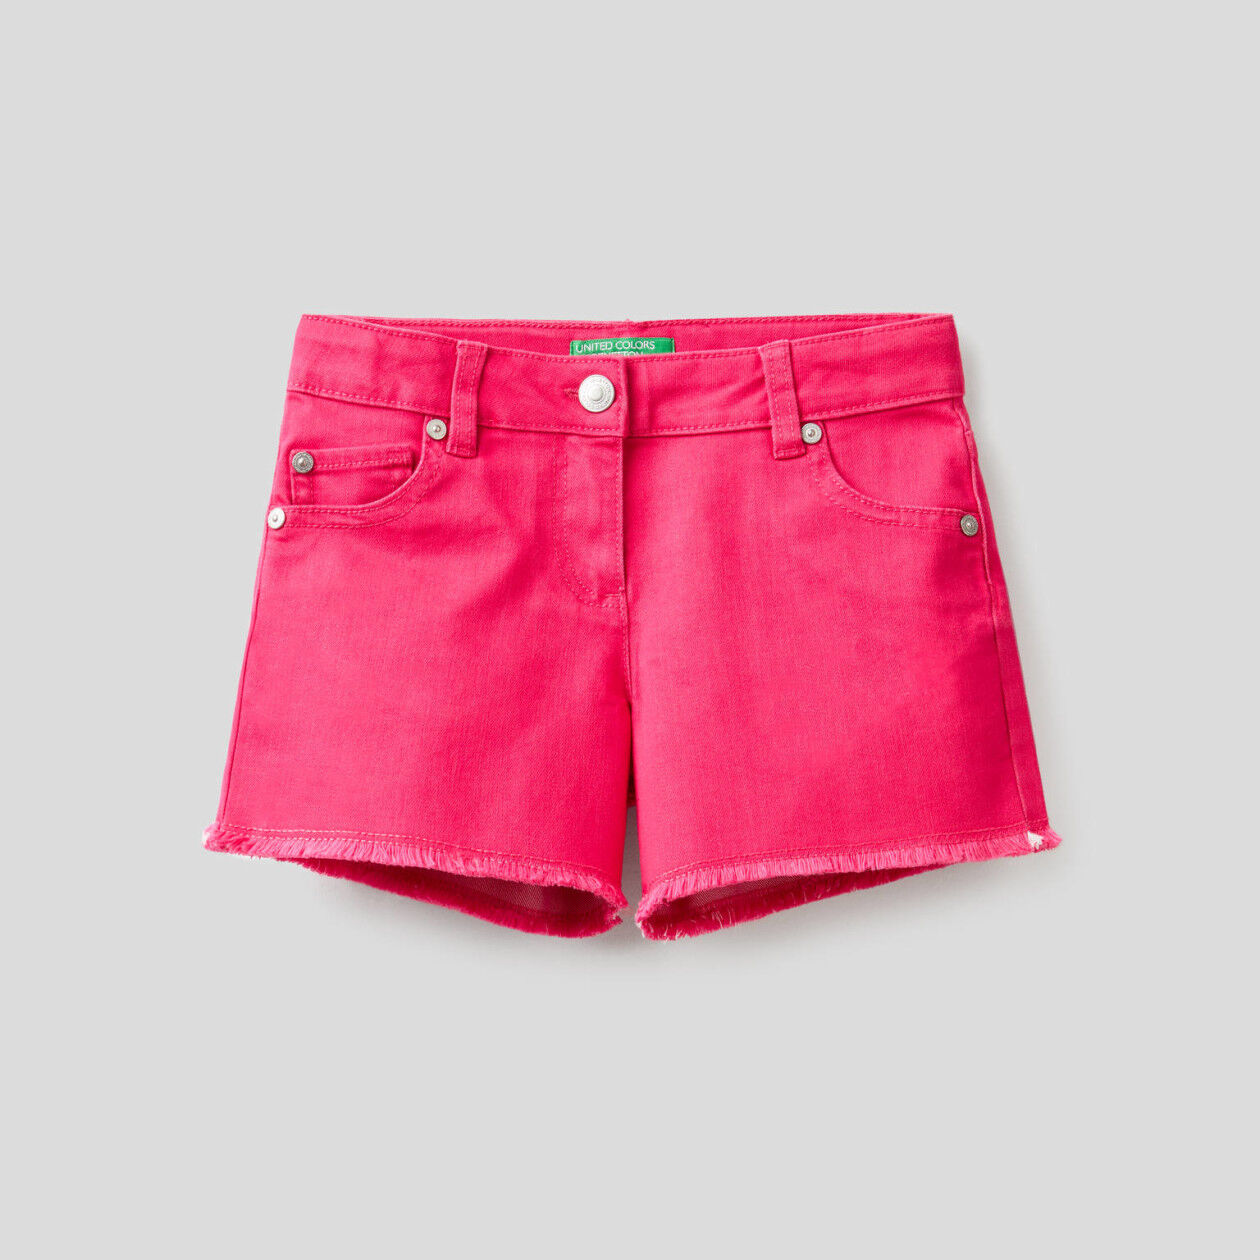 Shorts in stretch cotton blend